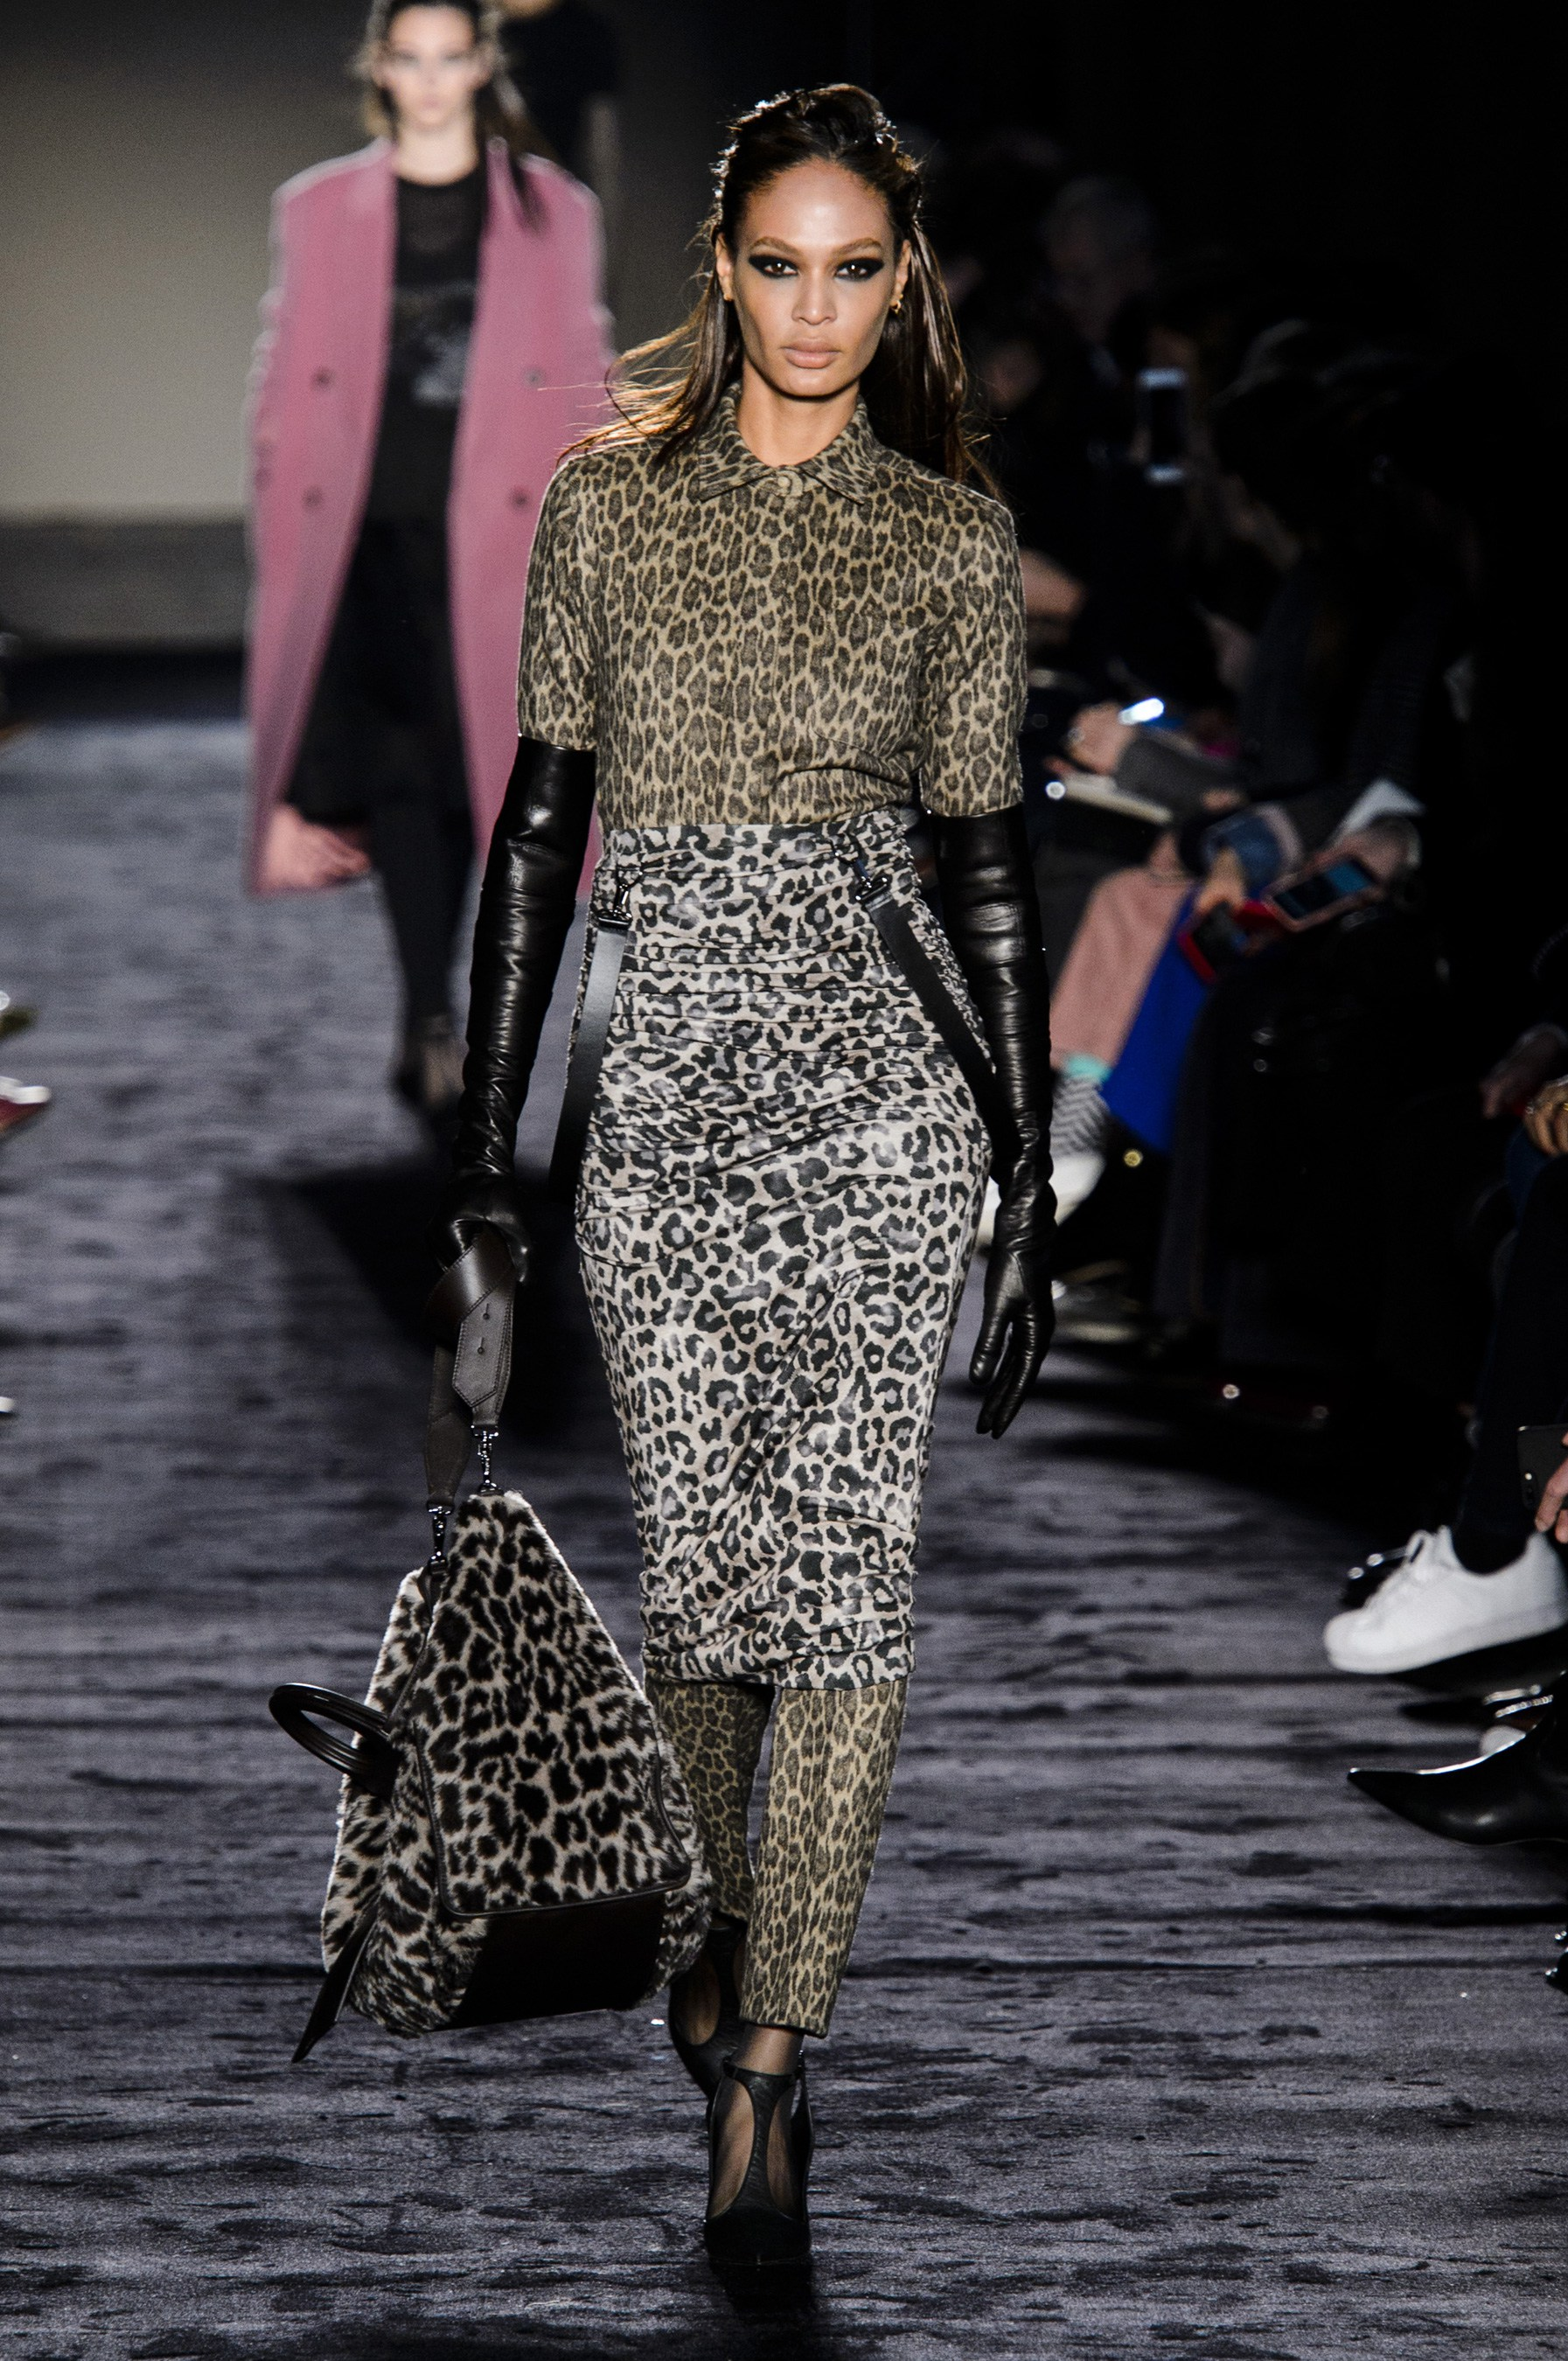 Leopard Fashion Trend Fall 2018